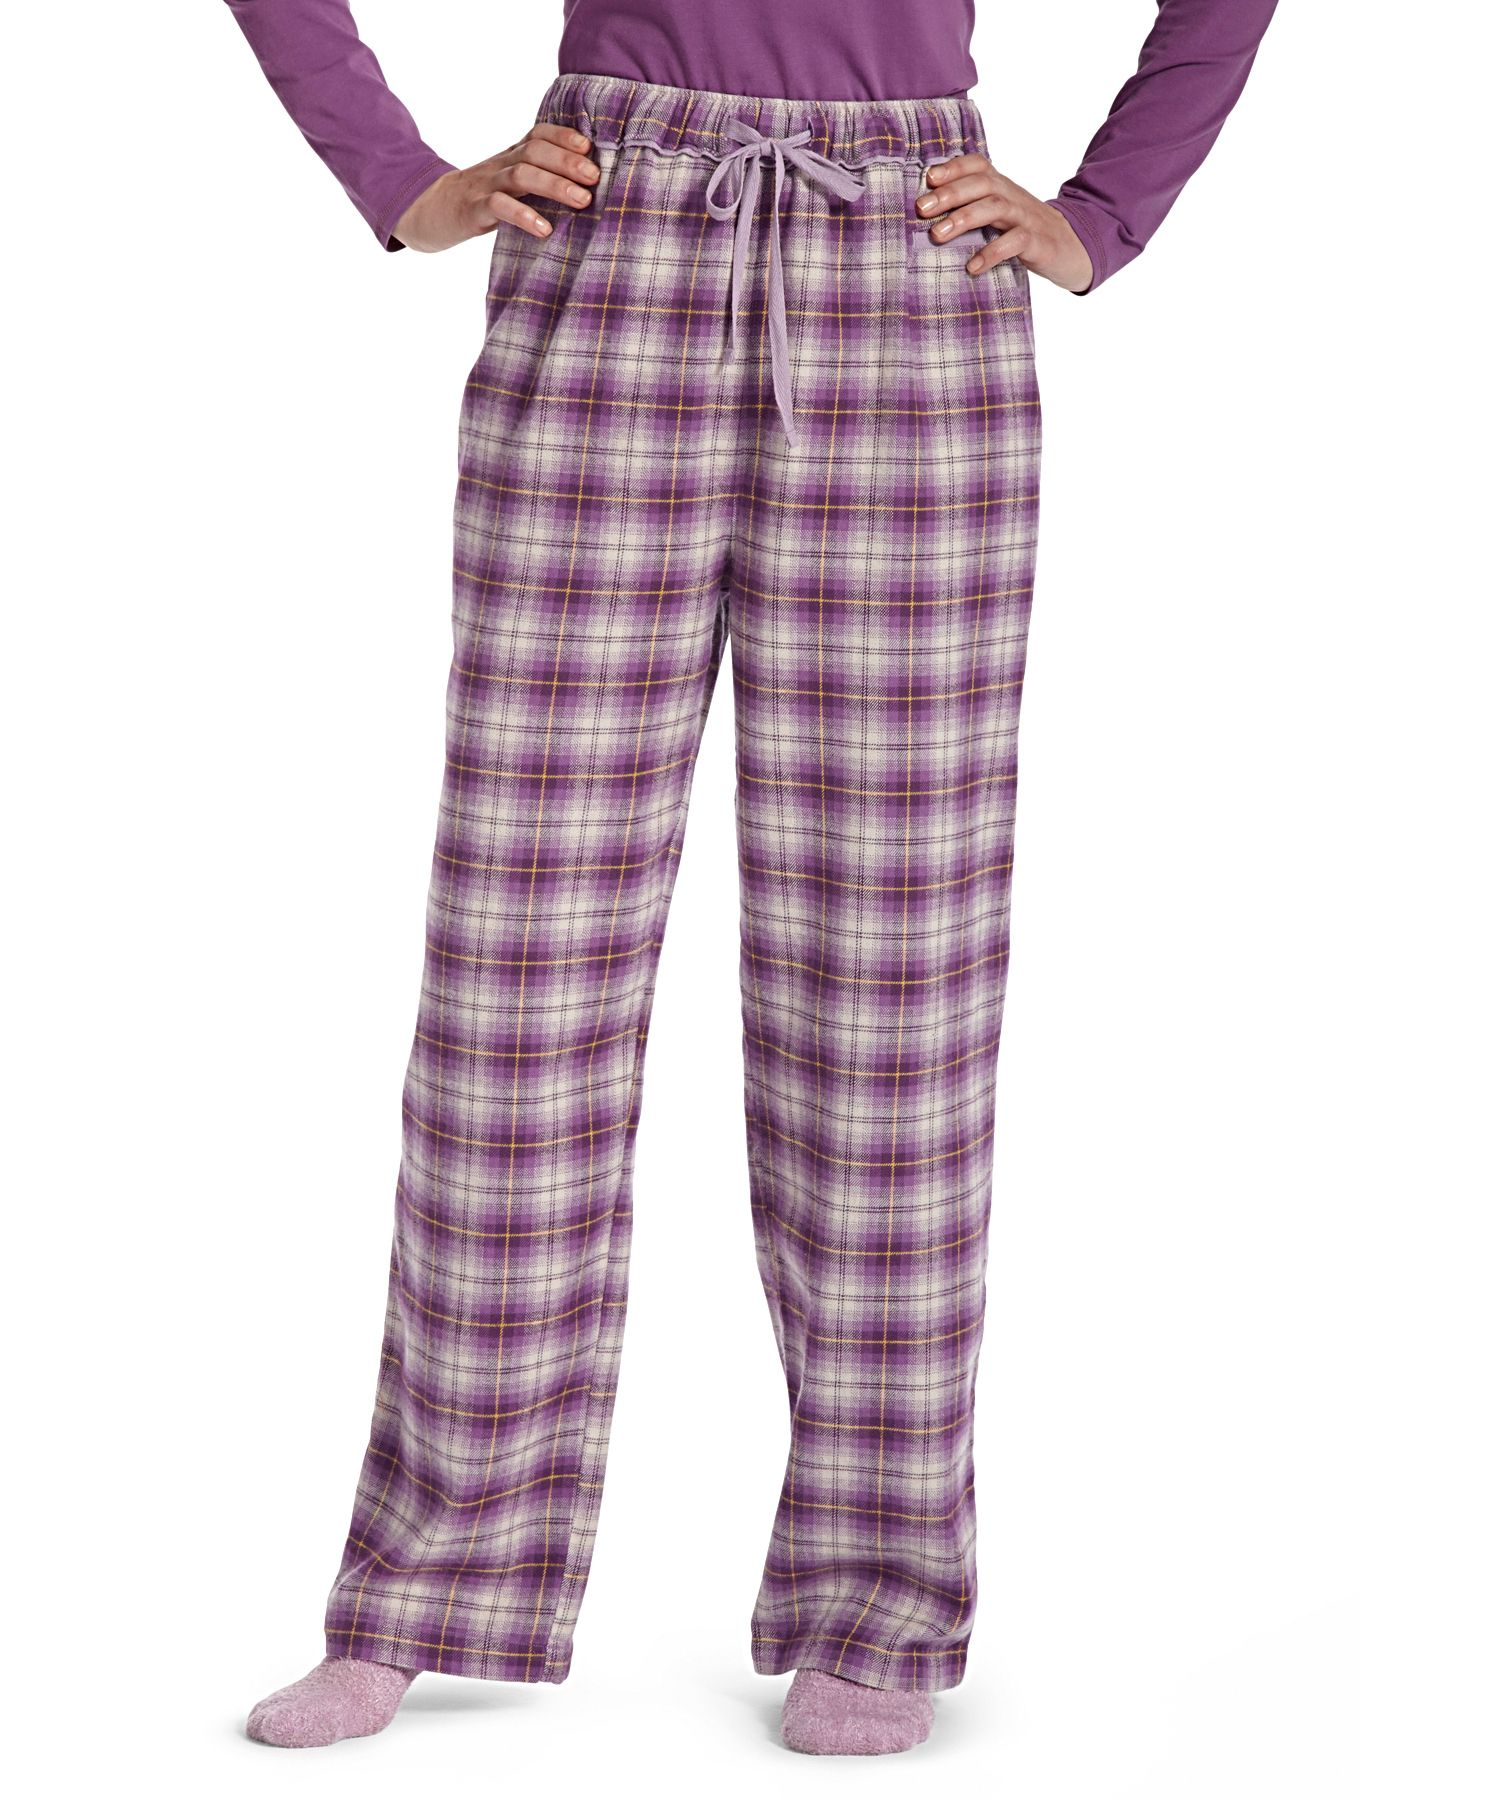 Red flannel pajama pants  Womenus Plaid Flannel PJ Pants at Woolrich TheFlannelLife